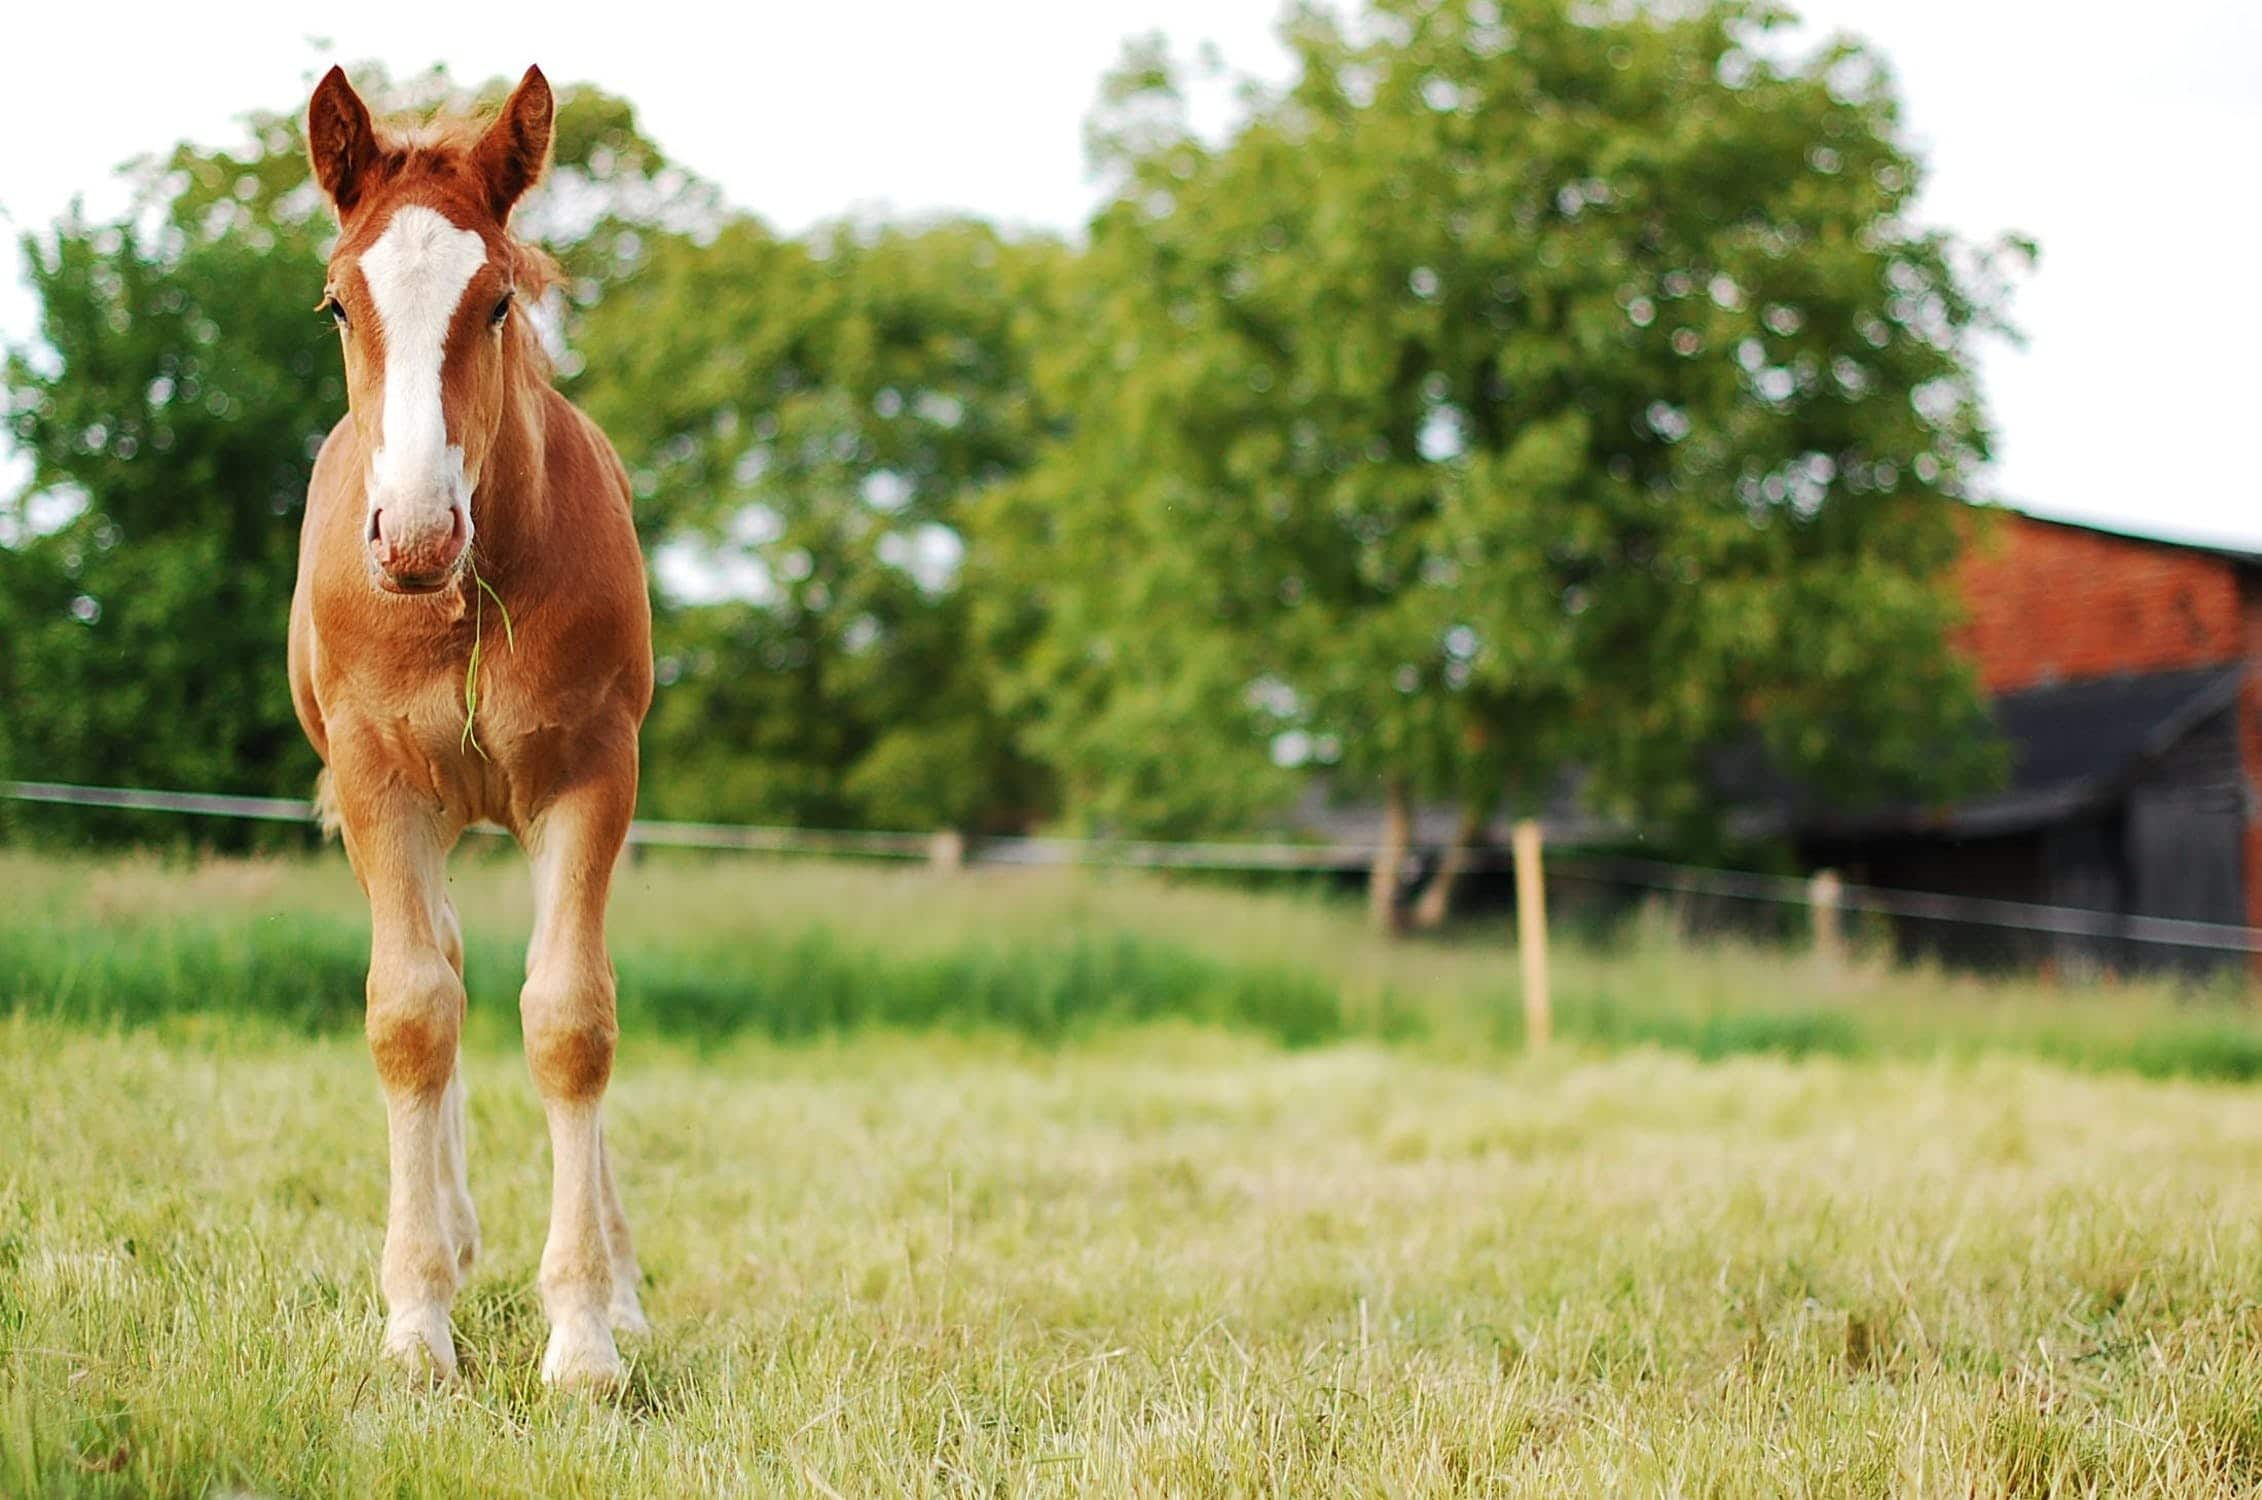 Pony standing in a field